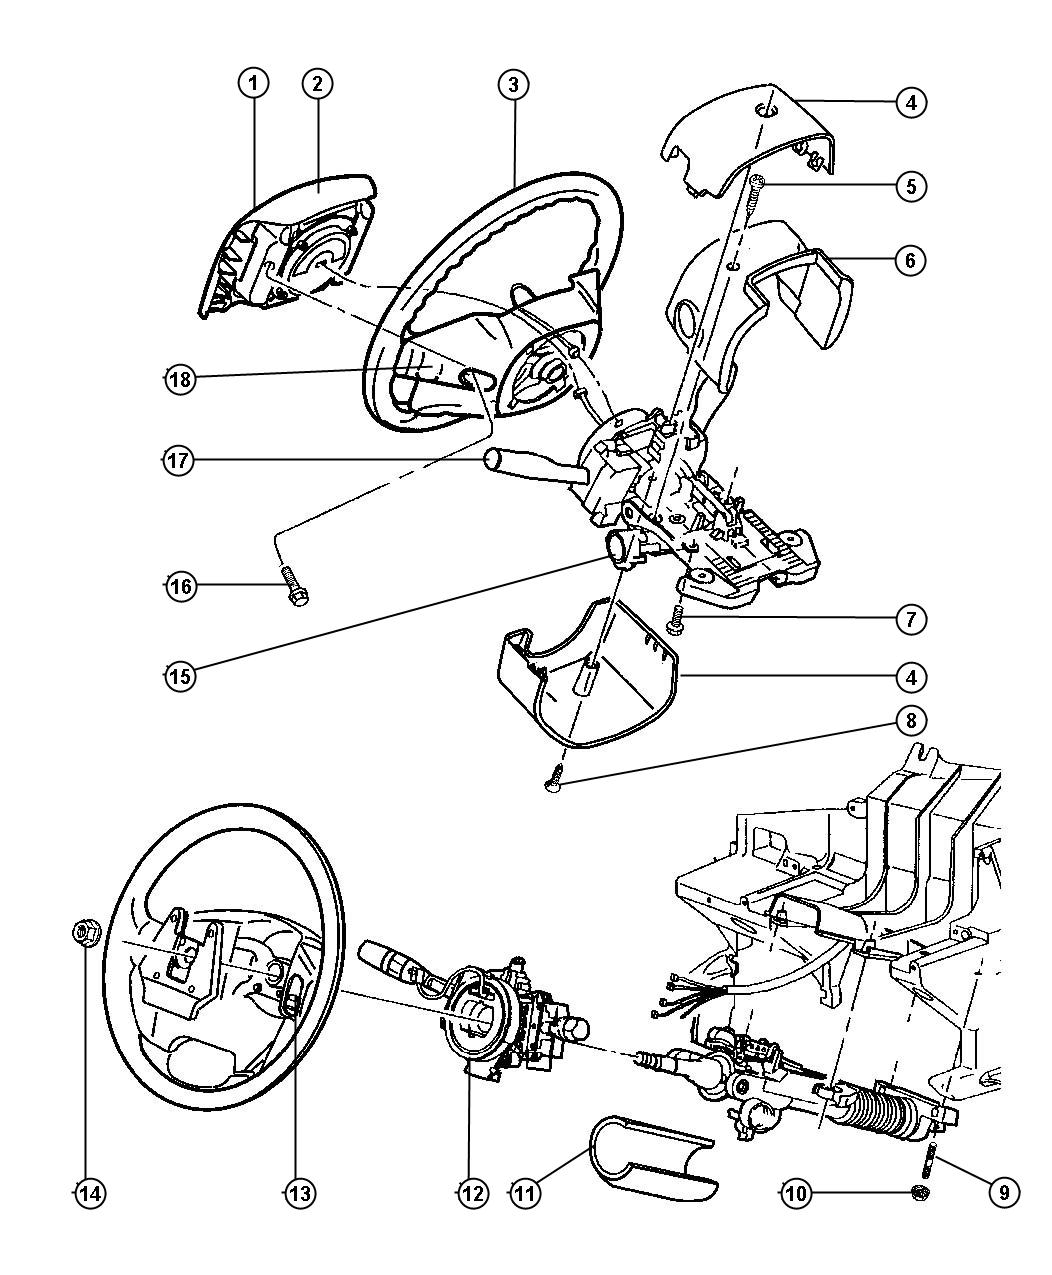 Jeep Grand Cherokee Radio Wiring Diagram Car